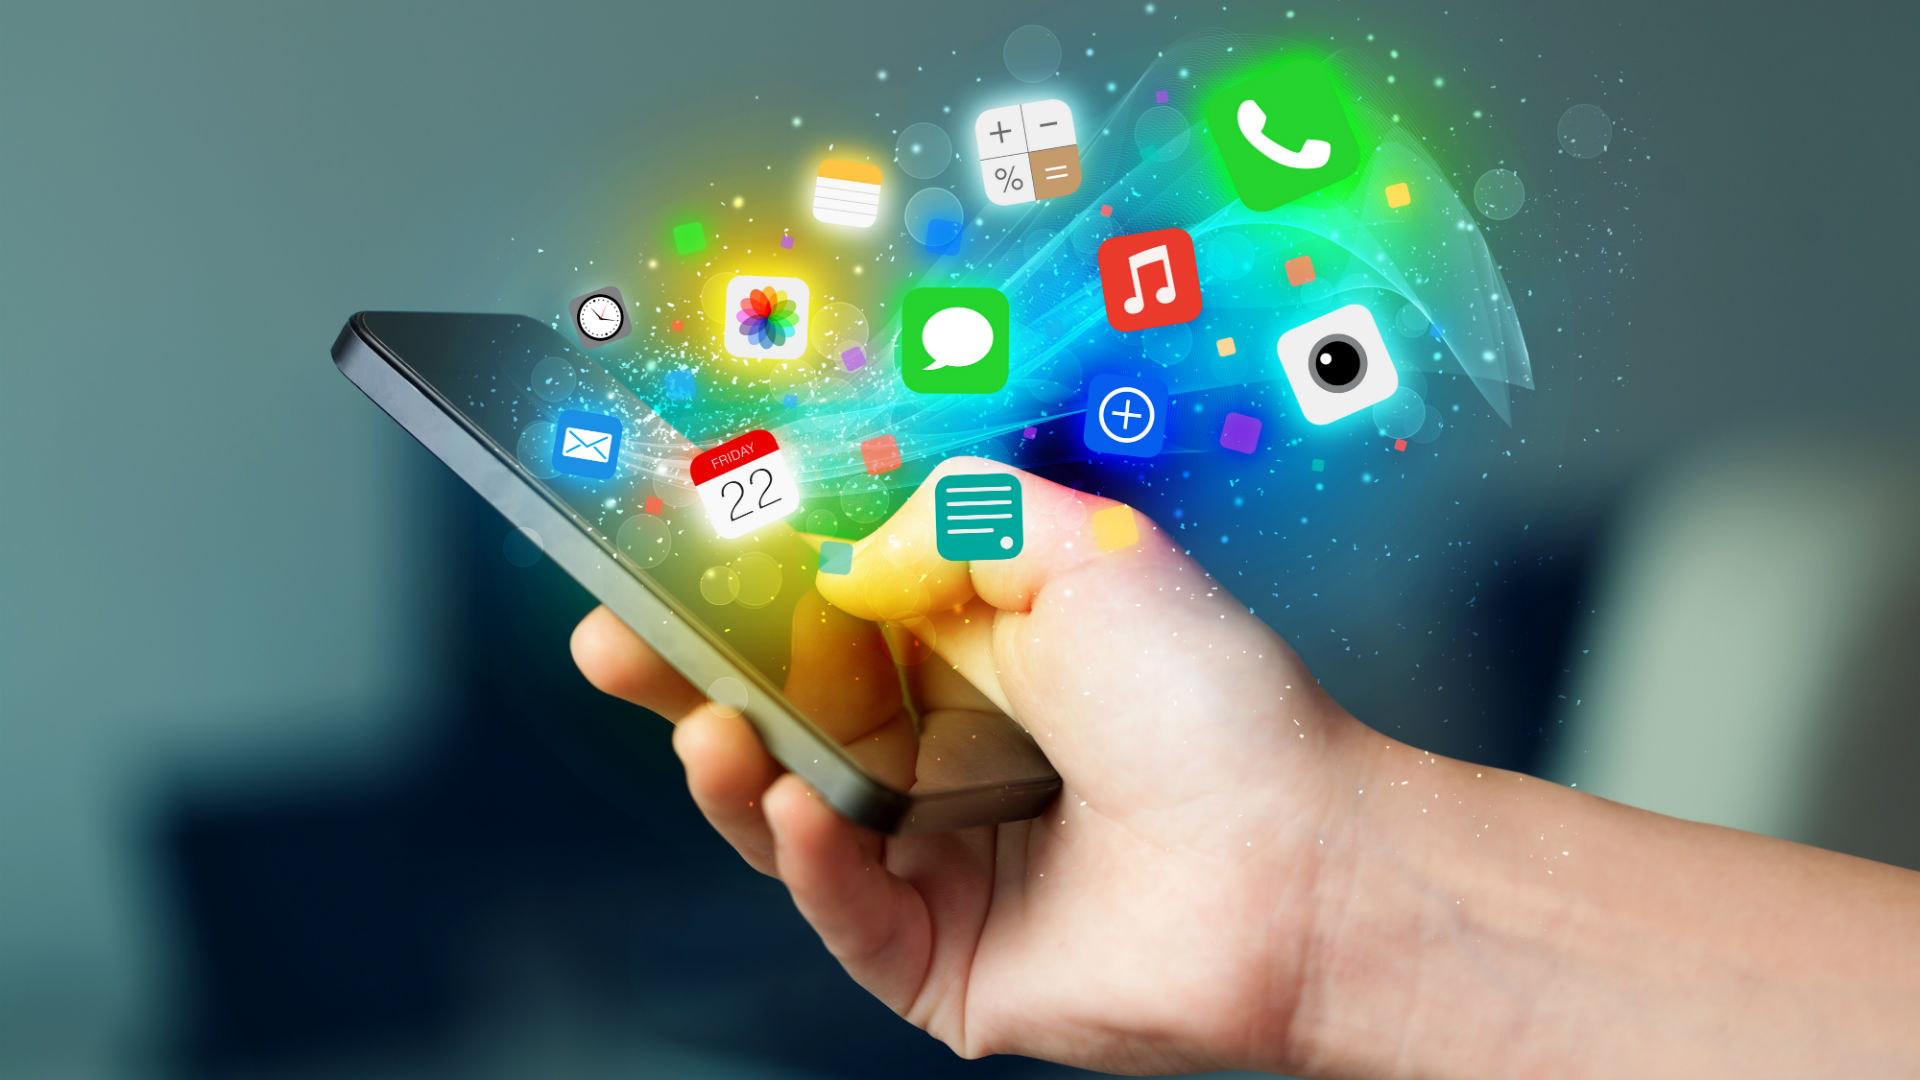 Top Firms For Best Mobile Application Development- How to Find Best One For You